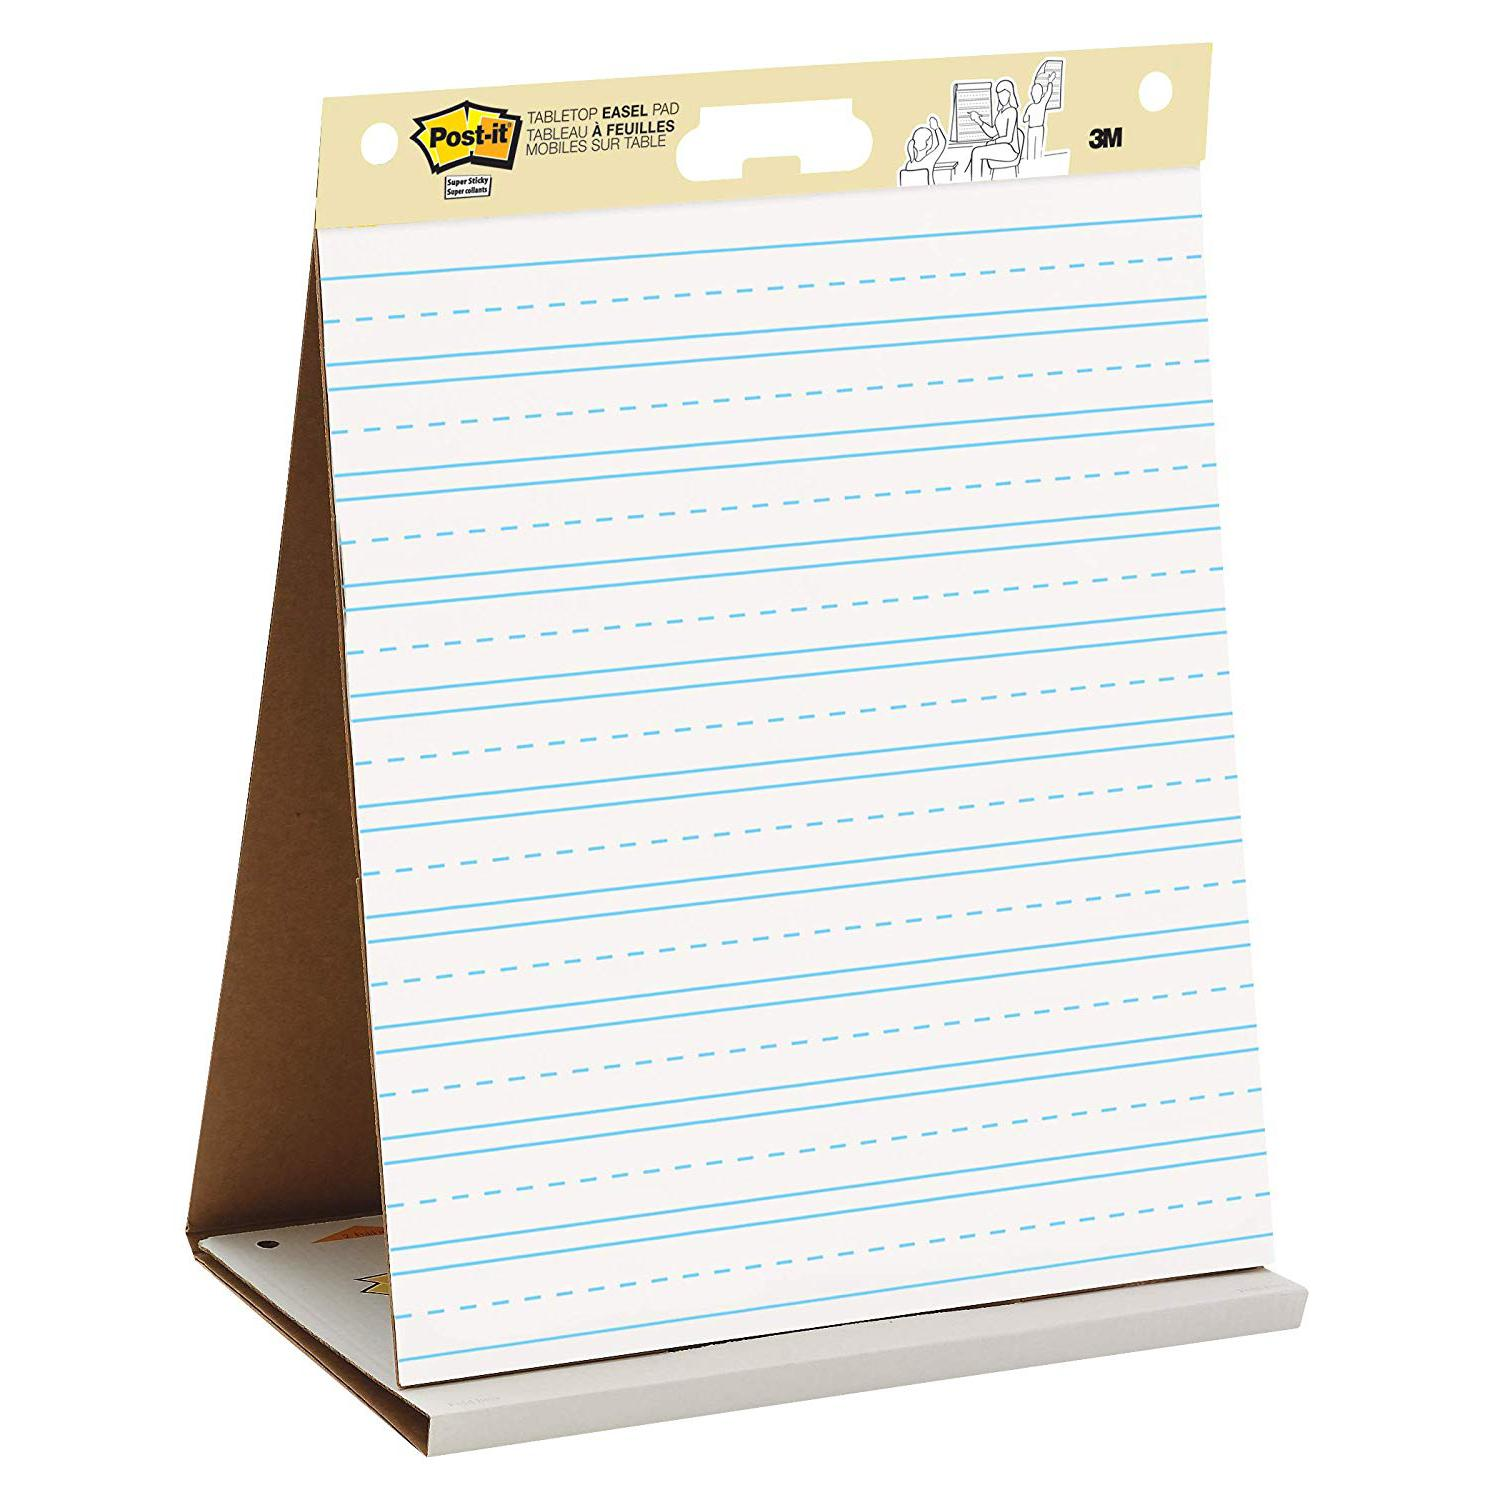 3M Post-It Table Top Easel Pad Primary Lined 20 x 23 Inches 563PRL